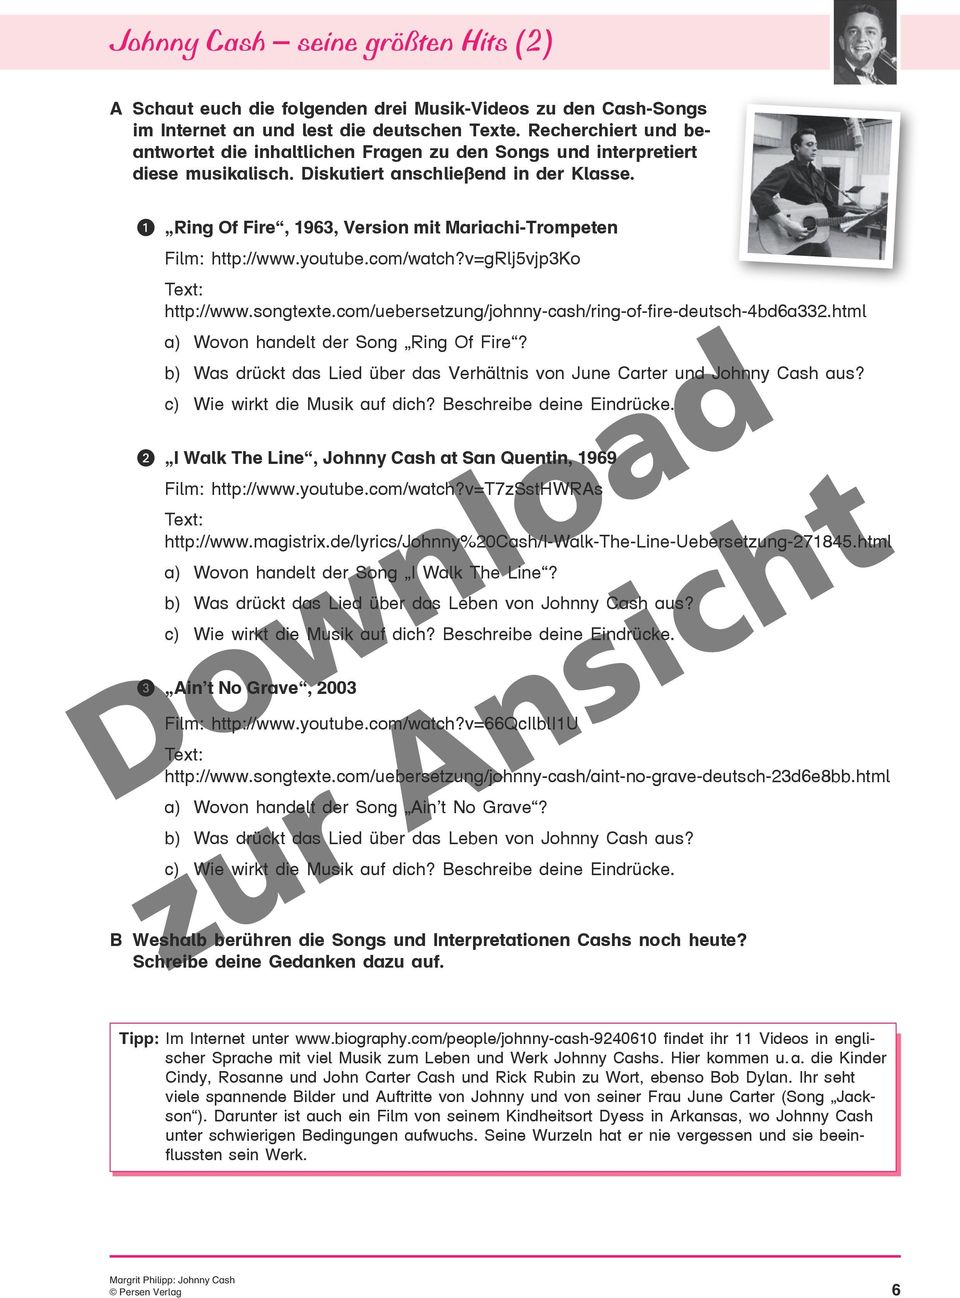 DOWNLOAD. Johnny Cash Klasse. Margrit Philipp. Abwechslungsreiches ...